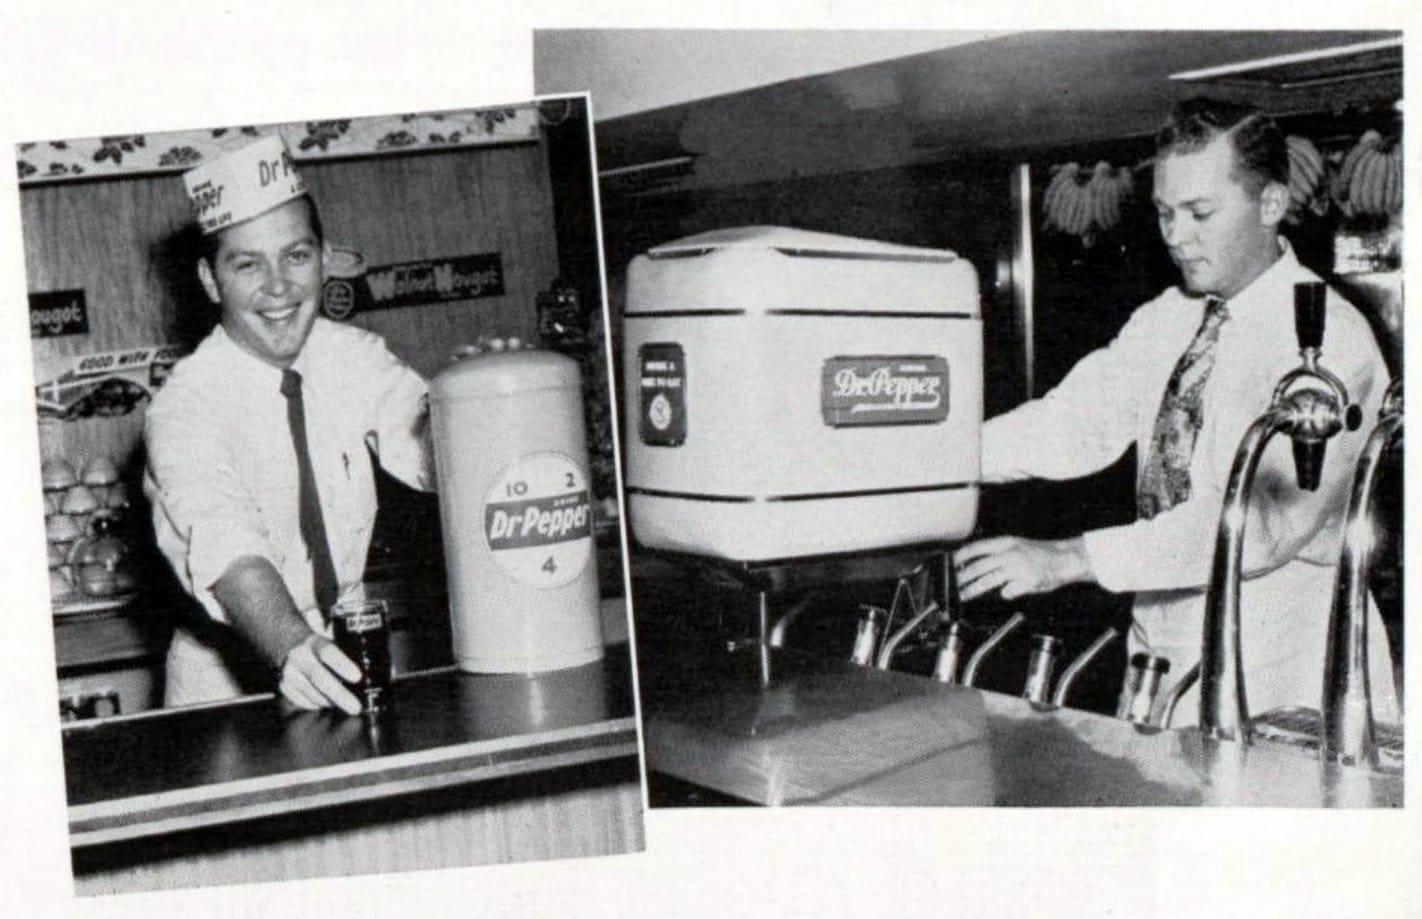 Dr Pepper soda fountains in the 1950s